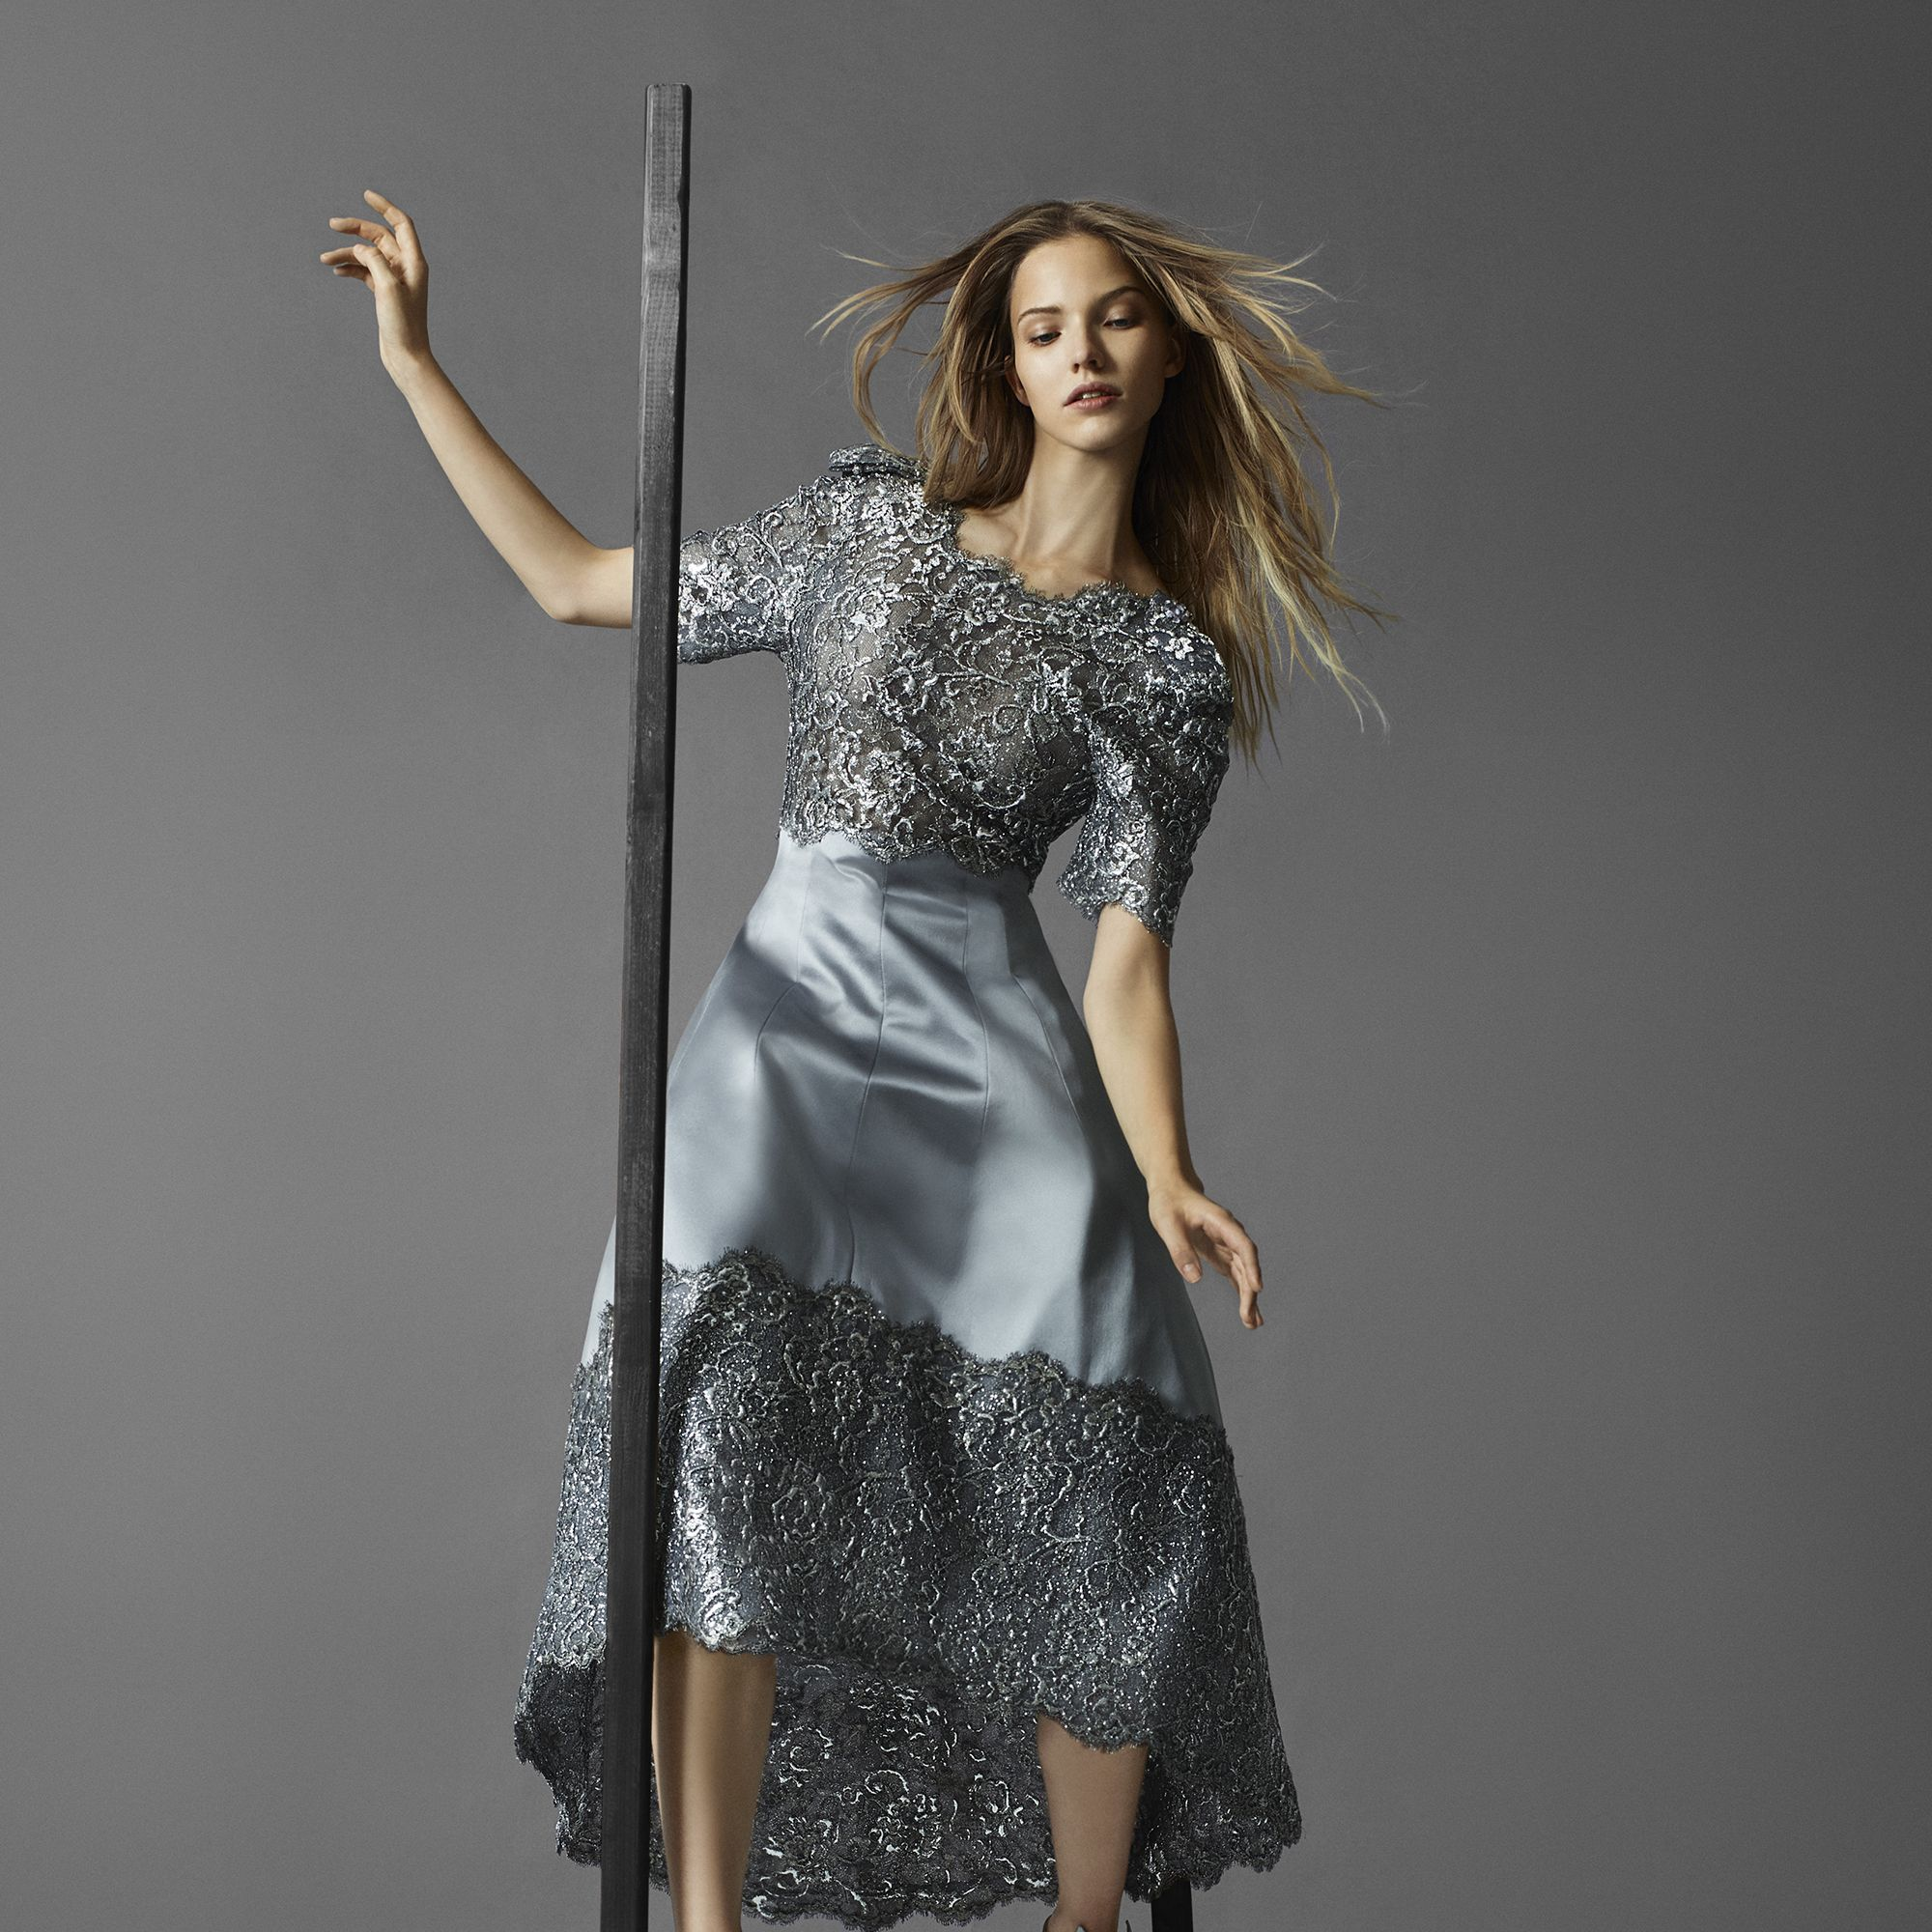 <p><strong>Chanel Haute Couture </strong>dress and shoes, prices upon request, 800-550-0005.</p>